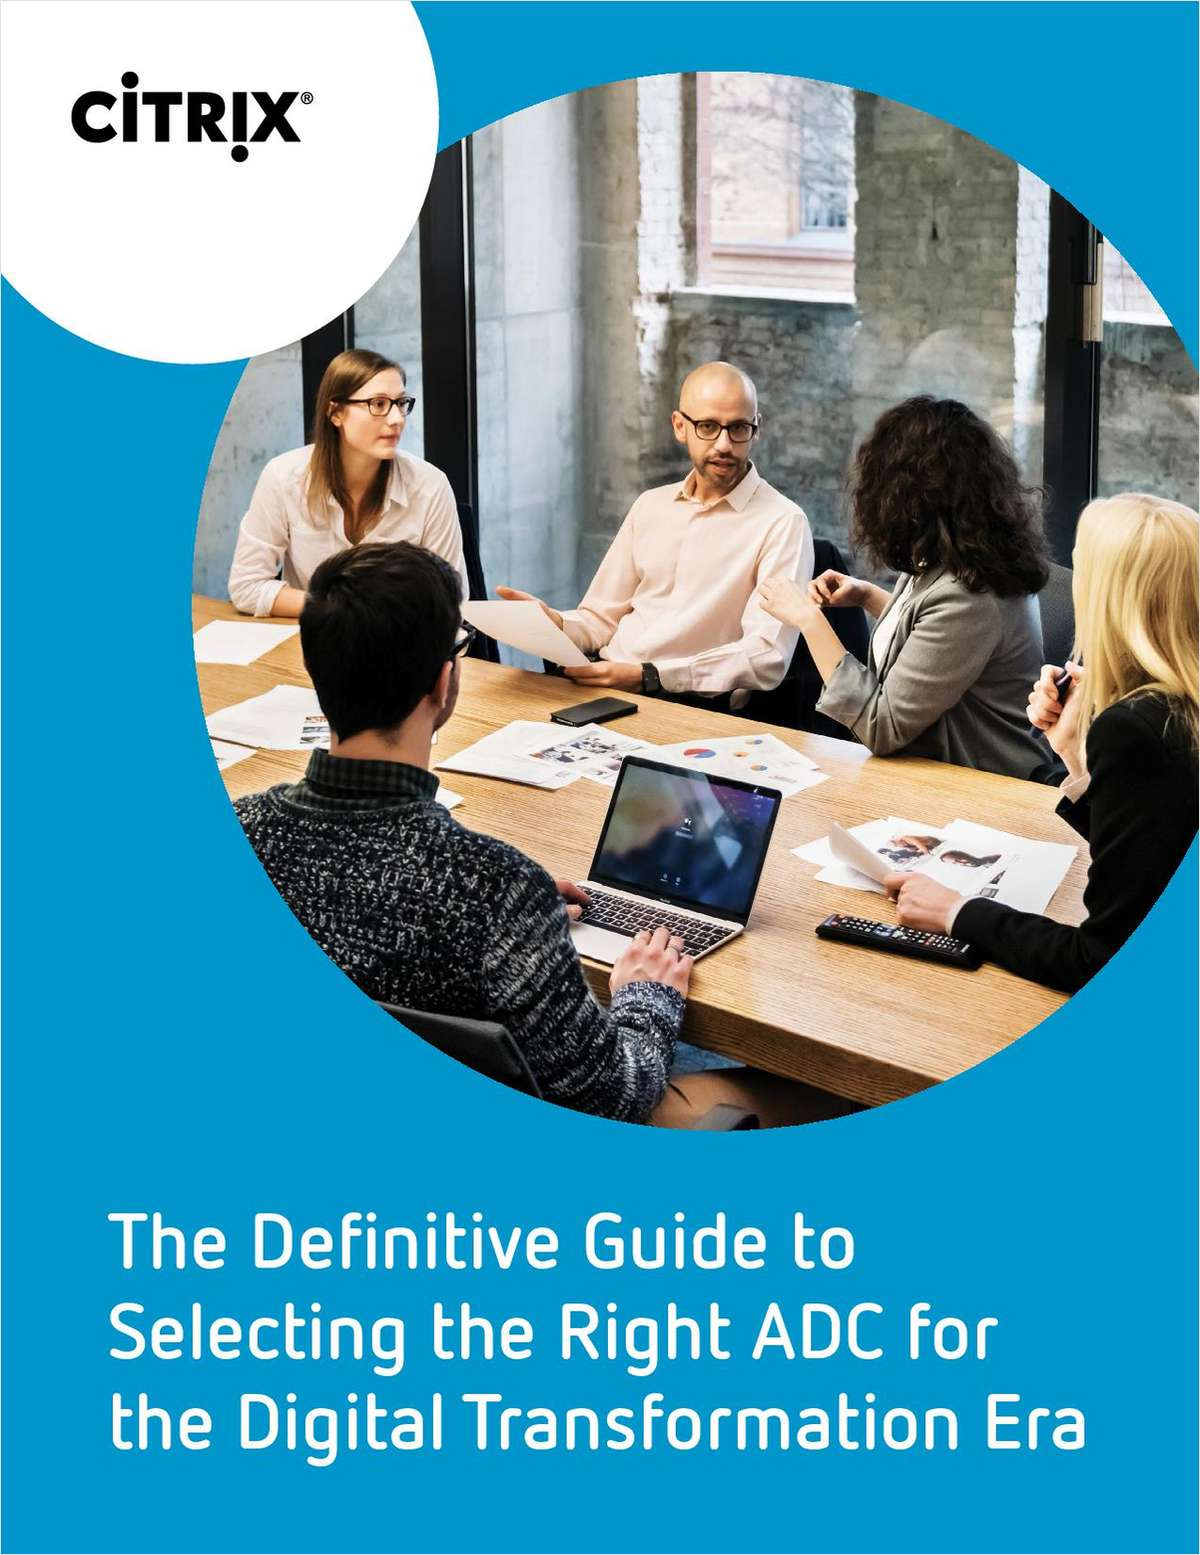 Definitive Guide for Selecting the Right ADC